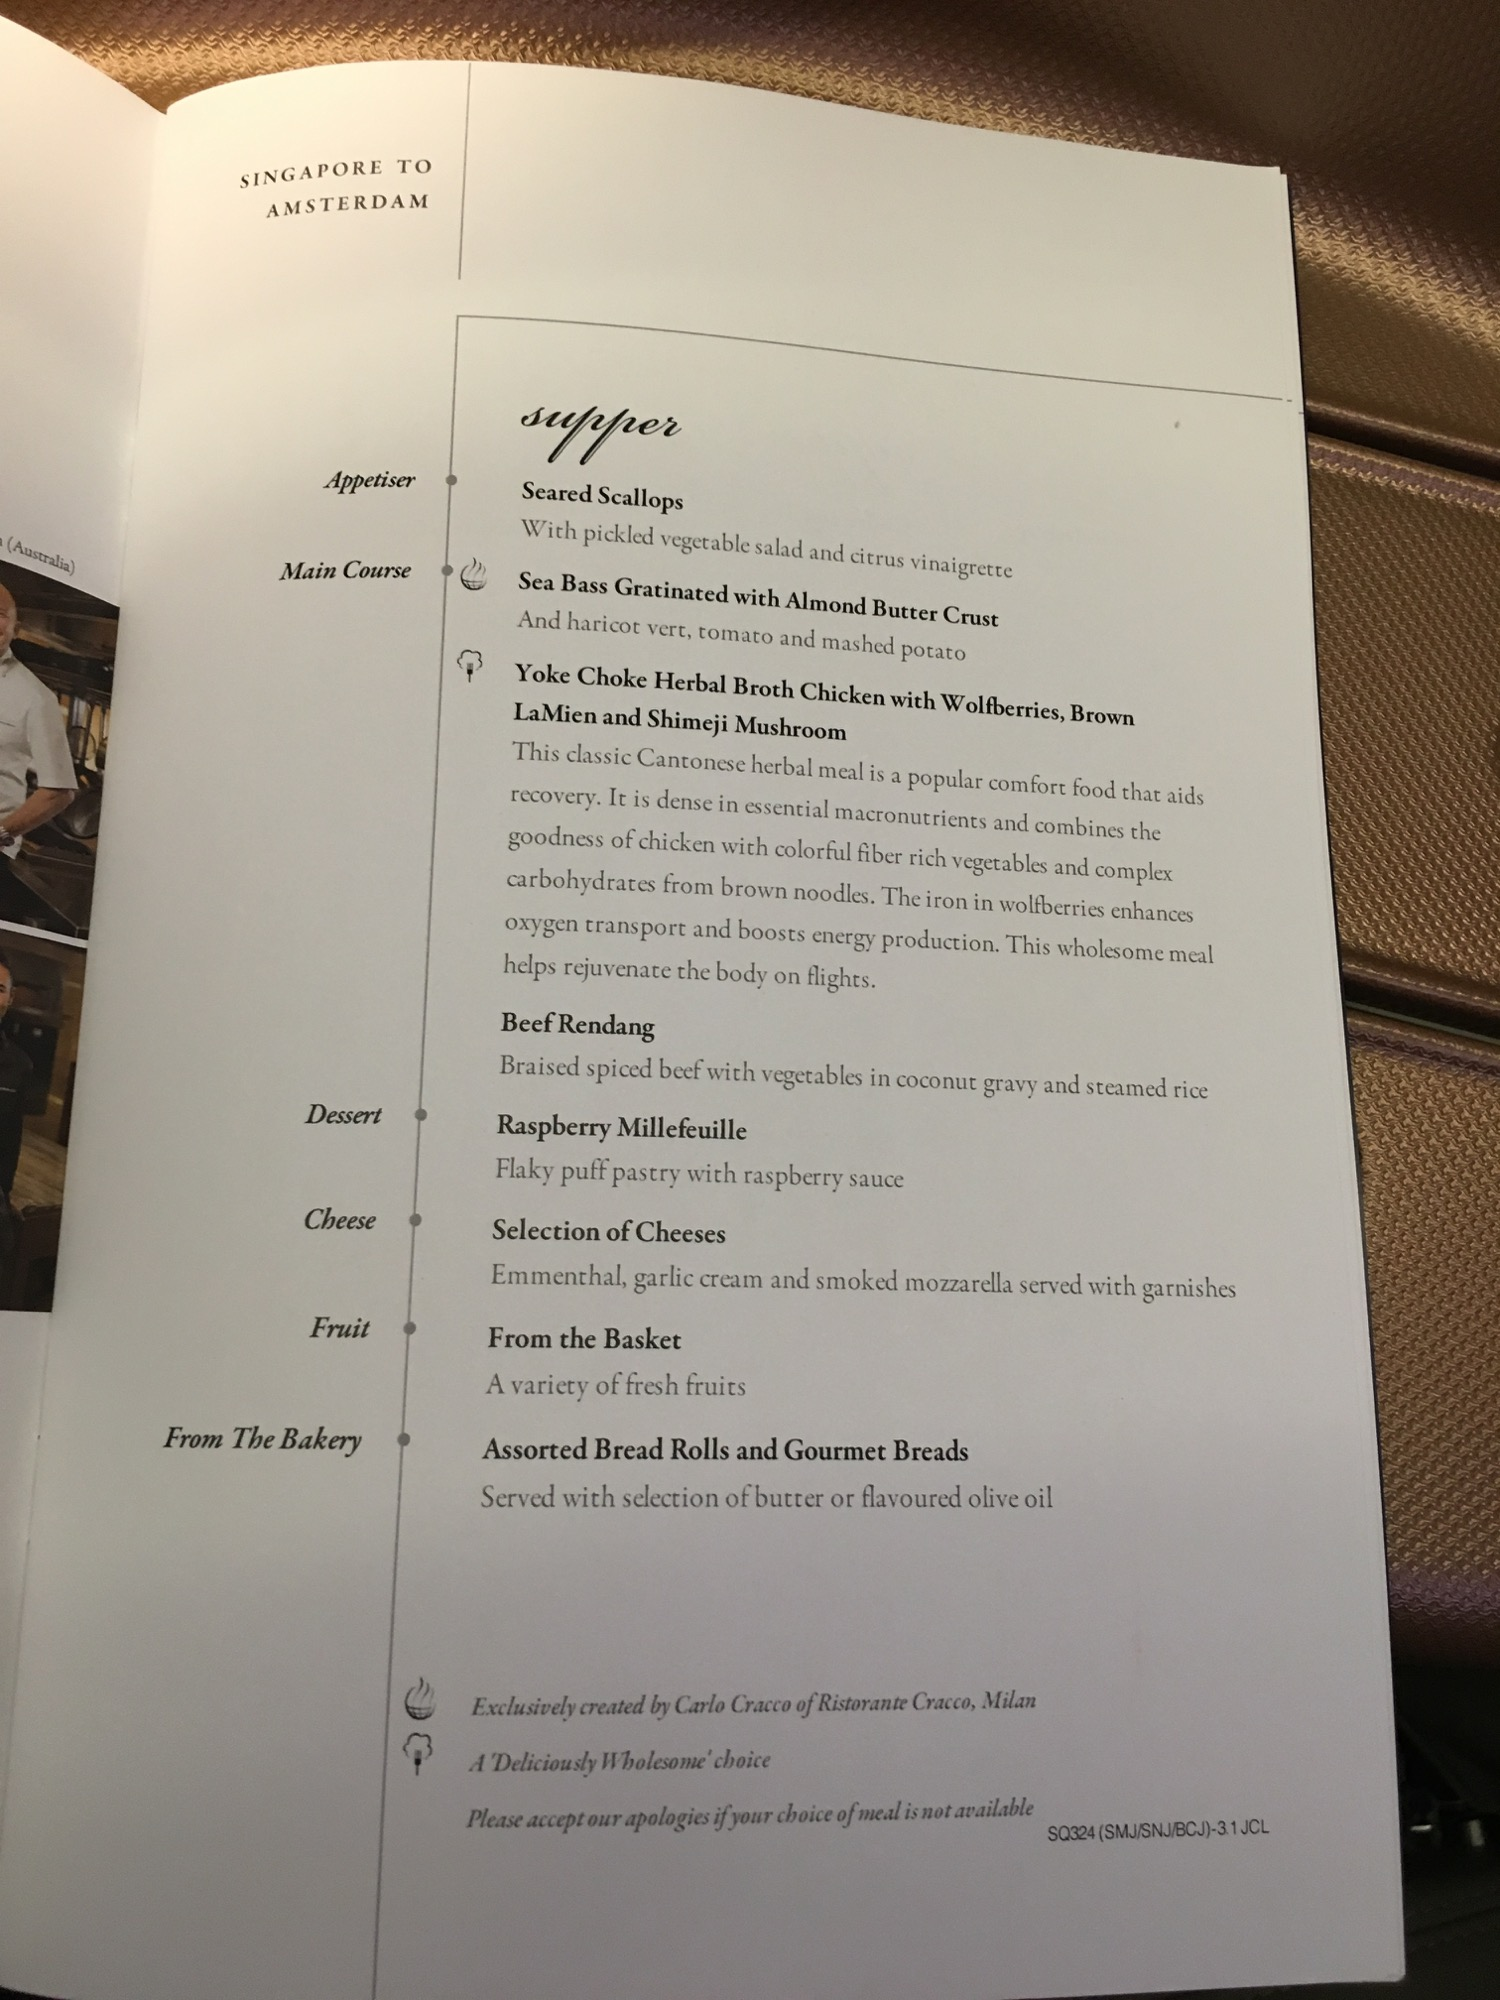 Singapore Airlines A350 Business Class Menu - 2